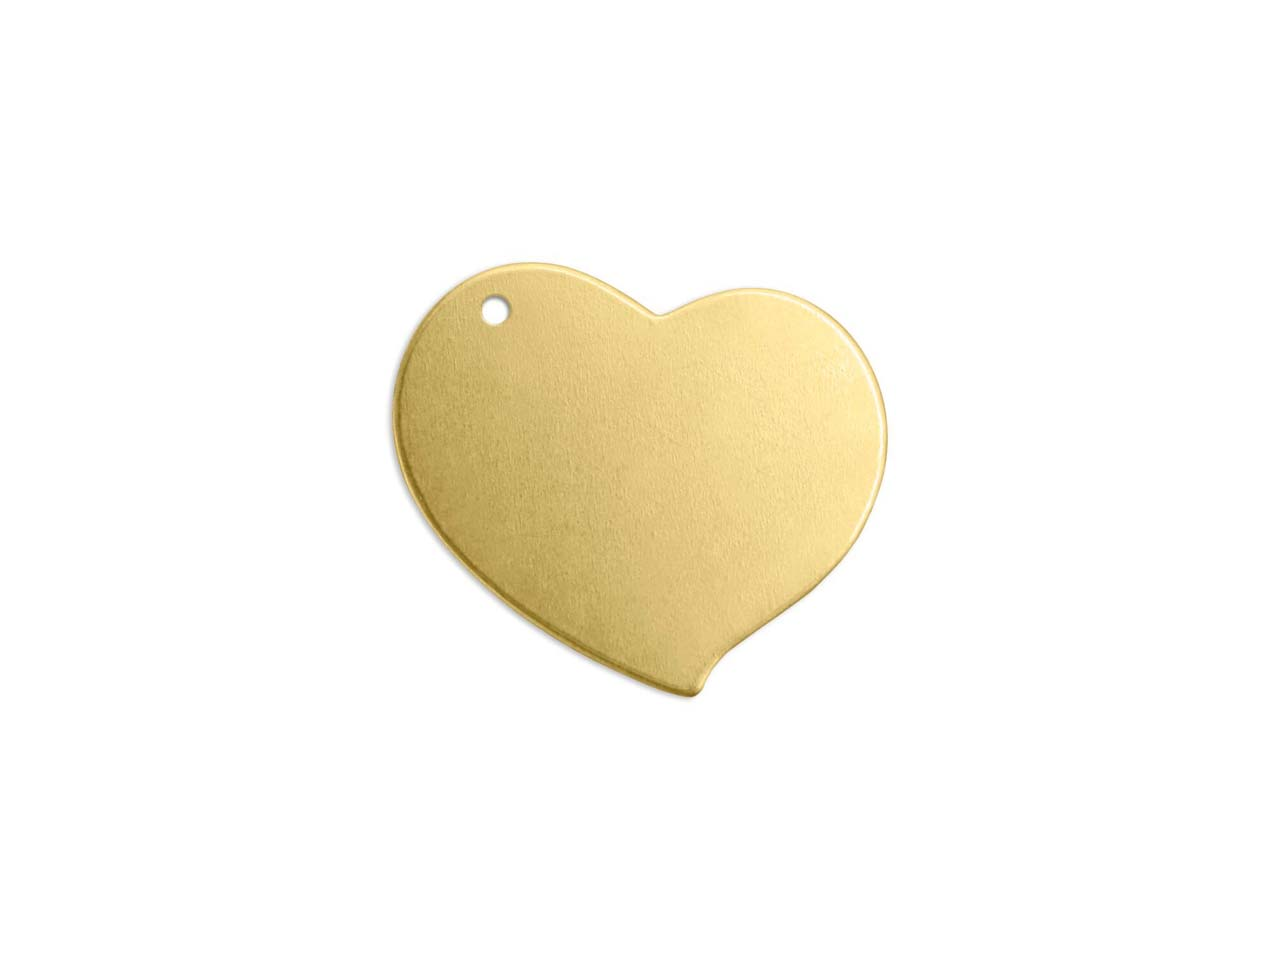 Impressart Brass Heart 19mm        Stamping Blank Pack of 7 Pierced   Hole